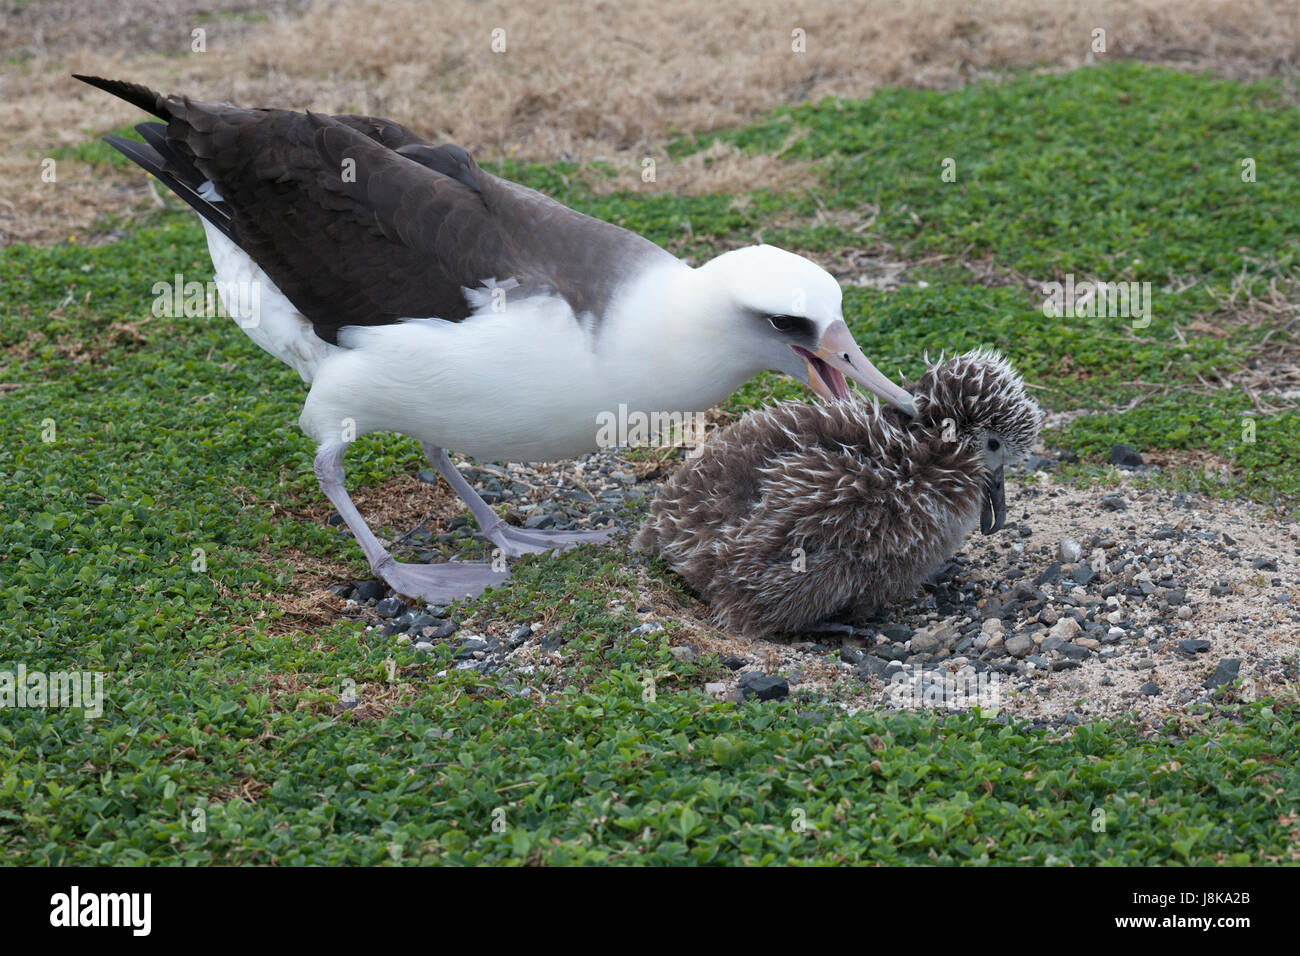 Laysan Albatross attacking unattended chick which is in hunched in submissive posture on nest. The adult bird has - Stock Image